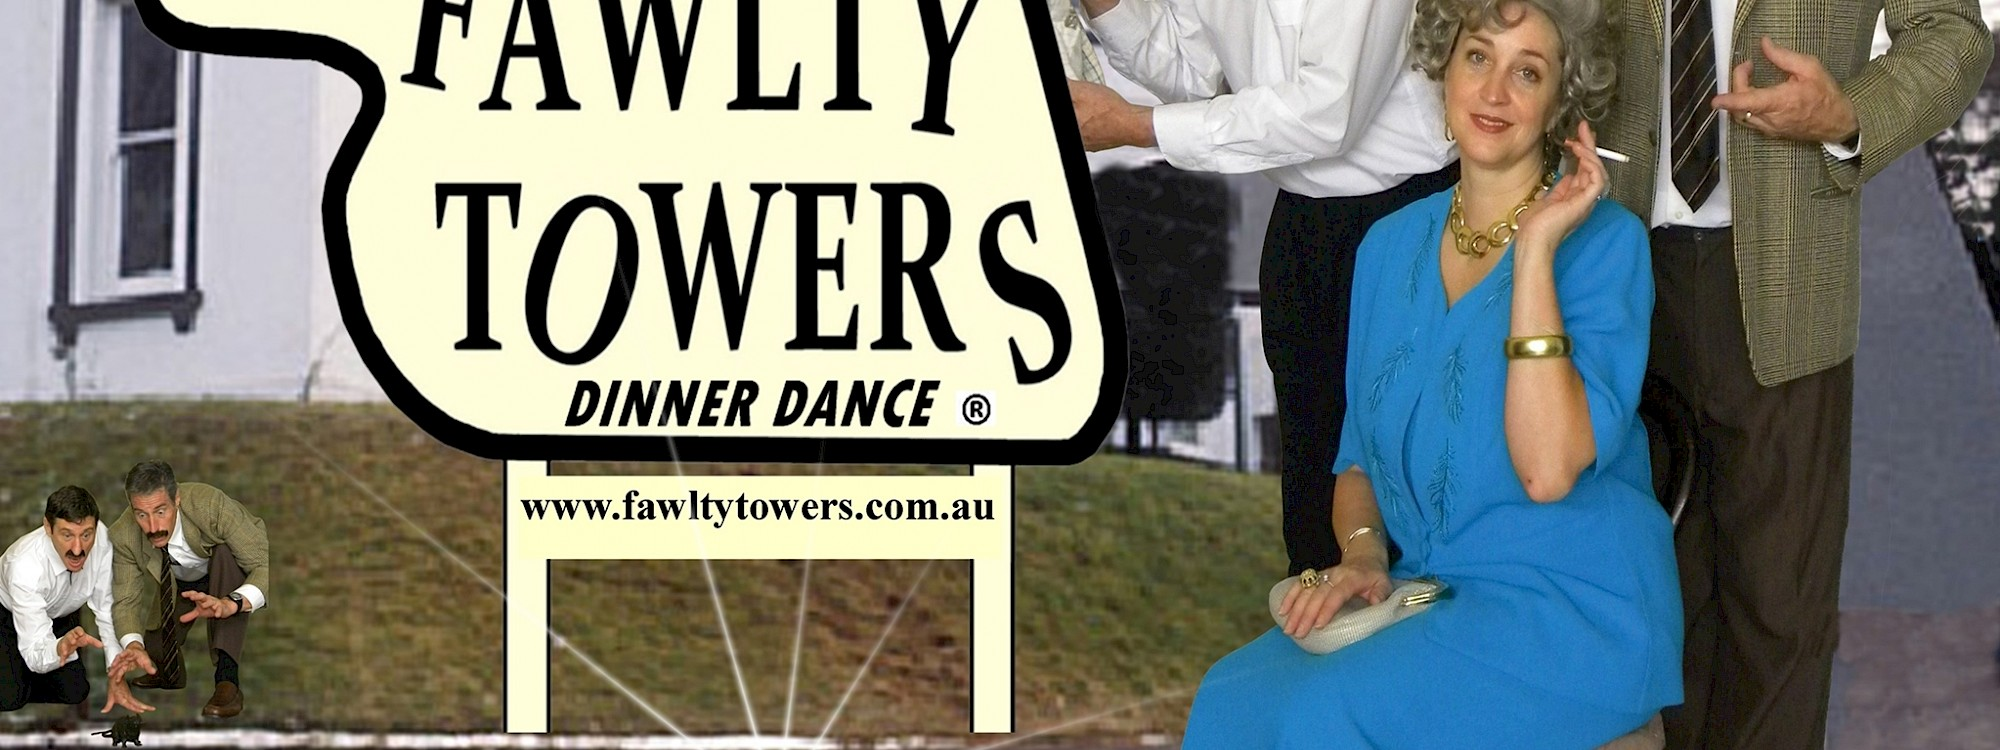 The Fawlty Towers Dinner Dance Show